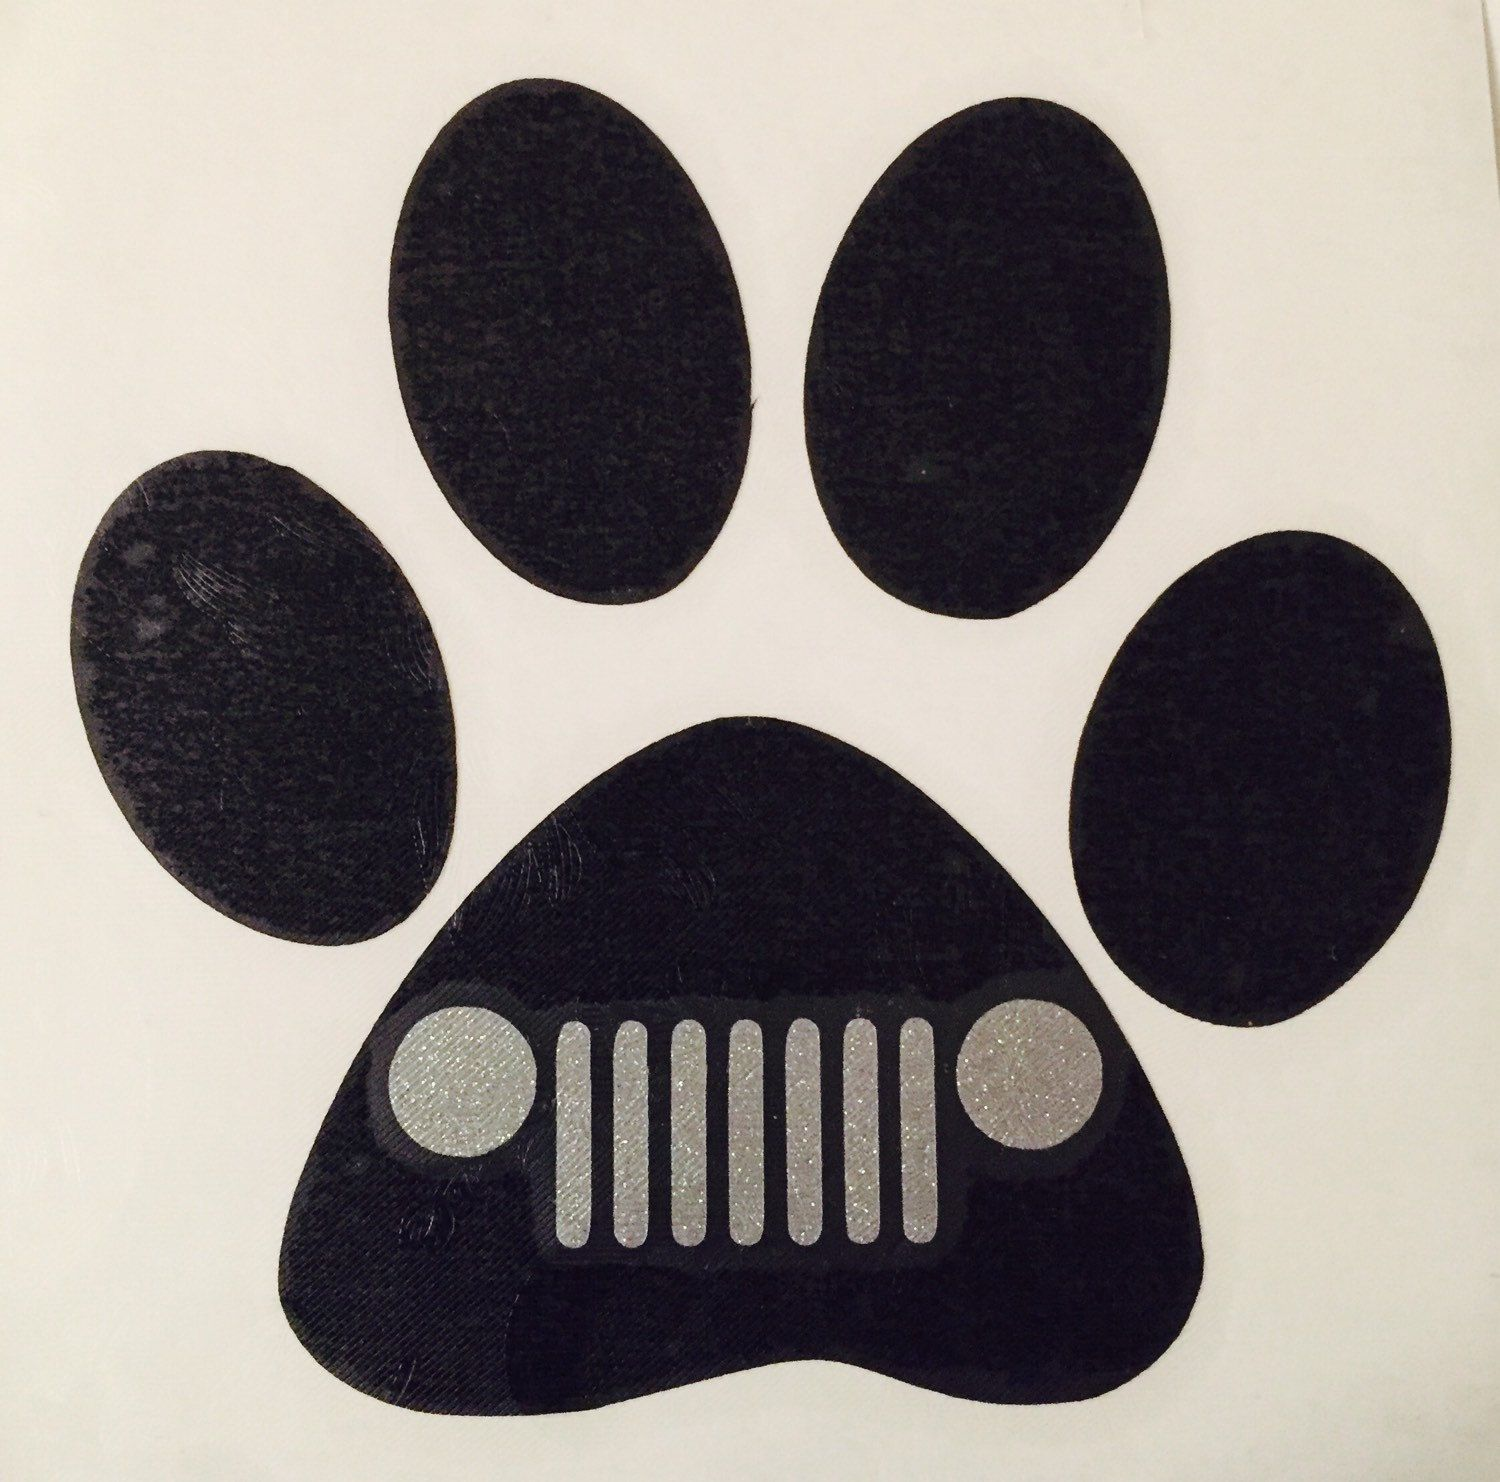 Heart and dog paw decal jeep grill dog vinyl decal sticker dog car decal i love dogs decals dog love car decal by kirkwoodboutique on etsy